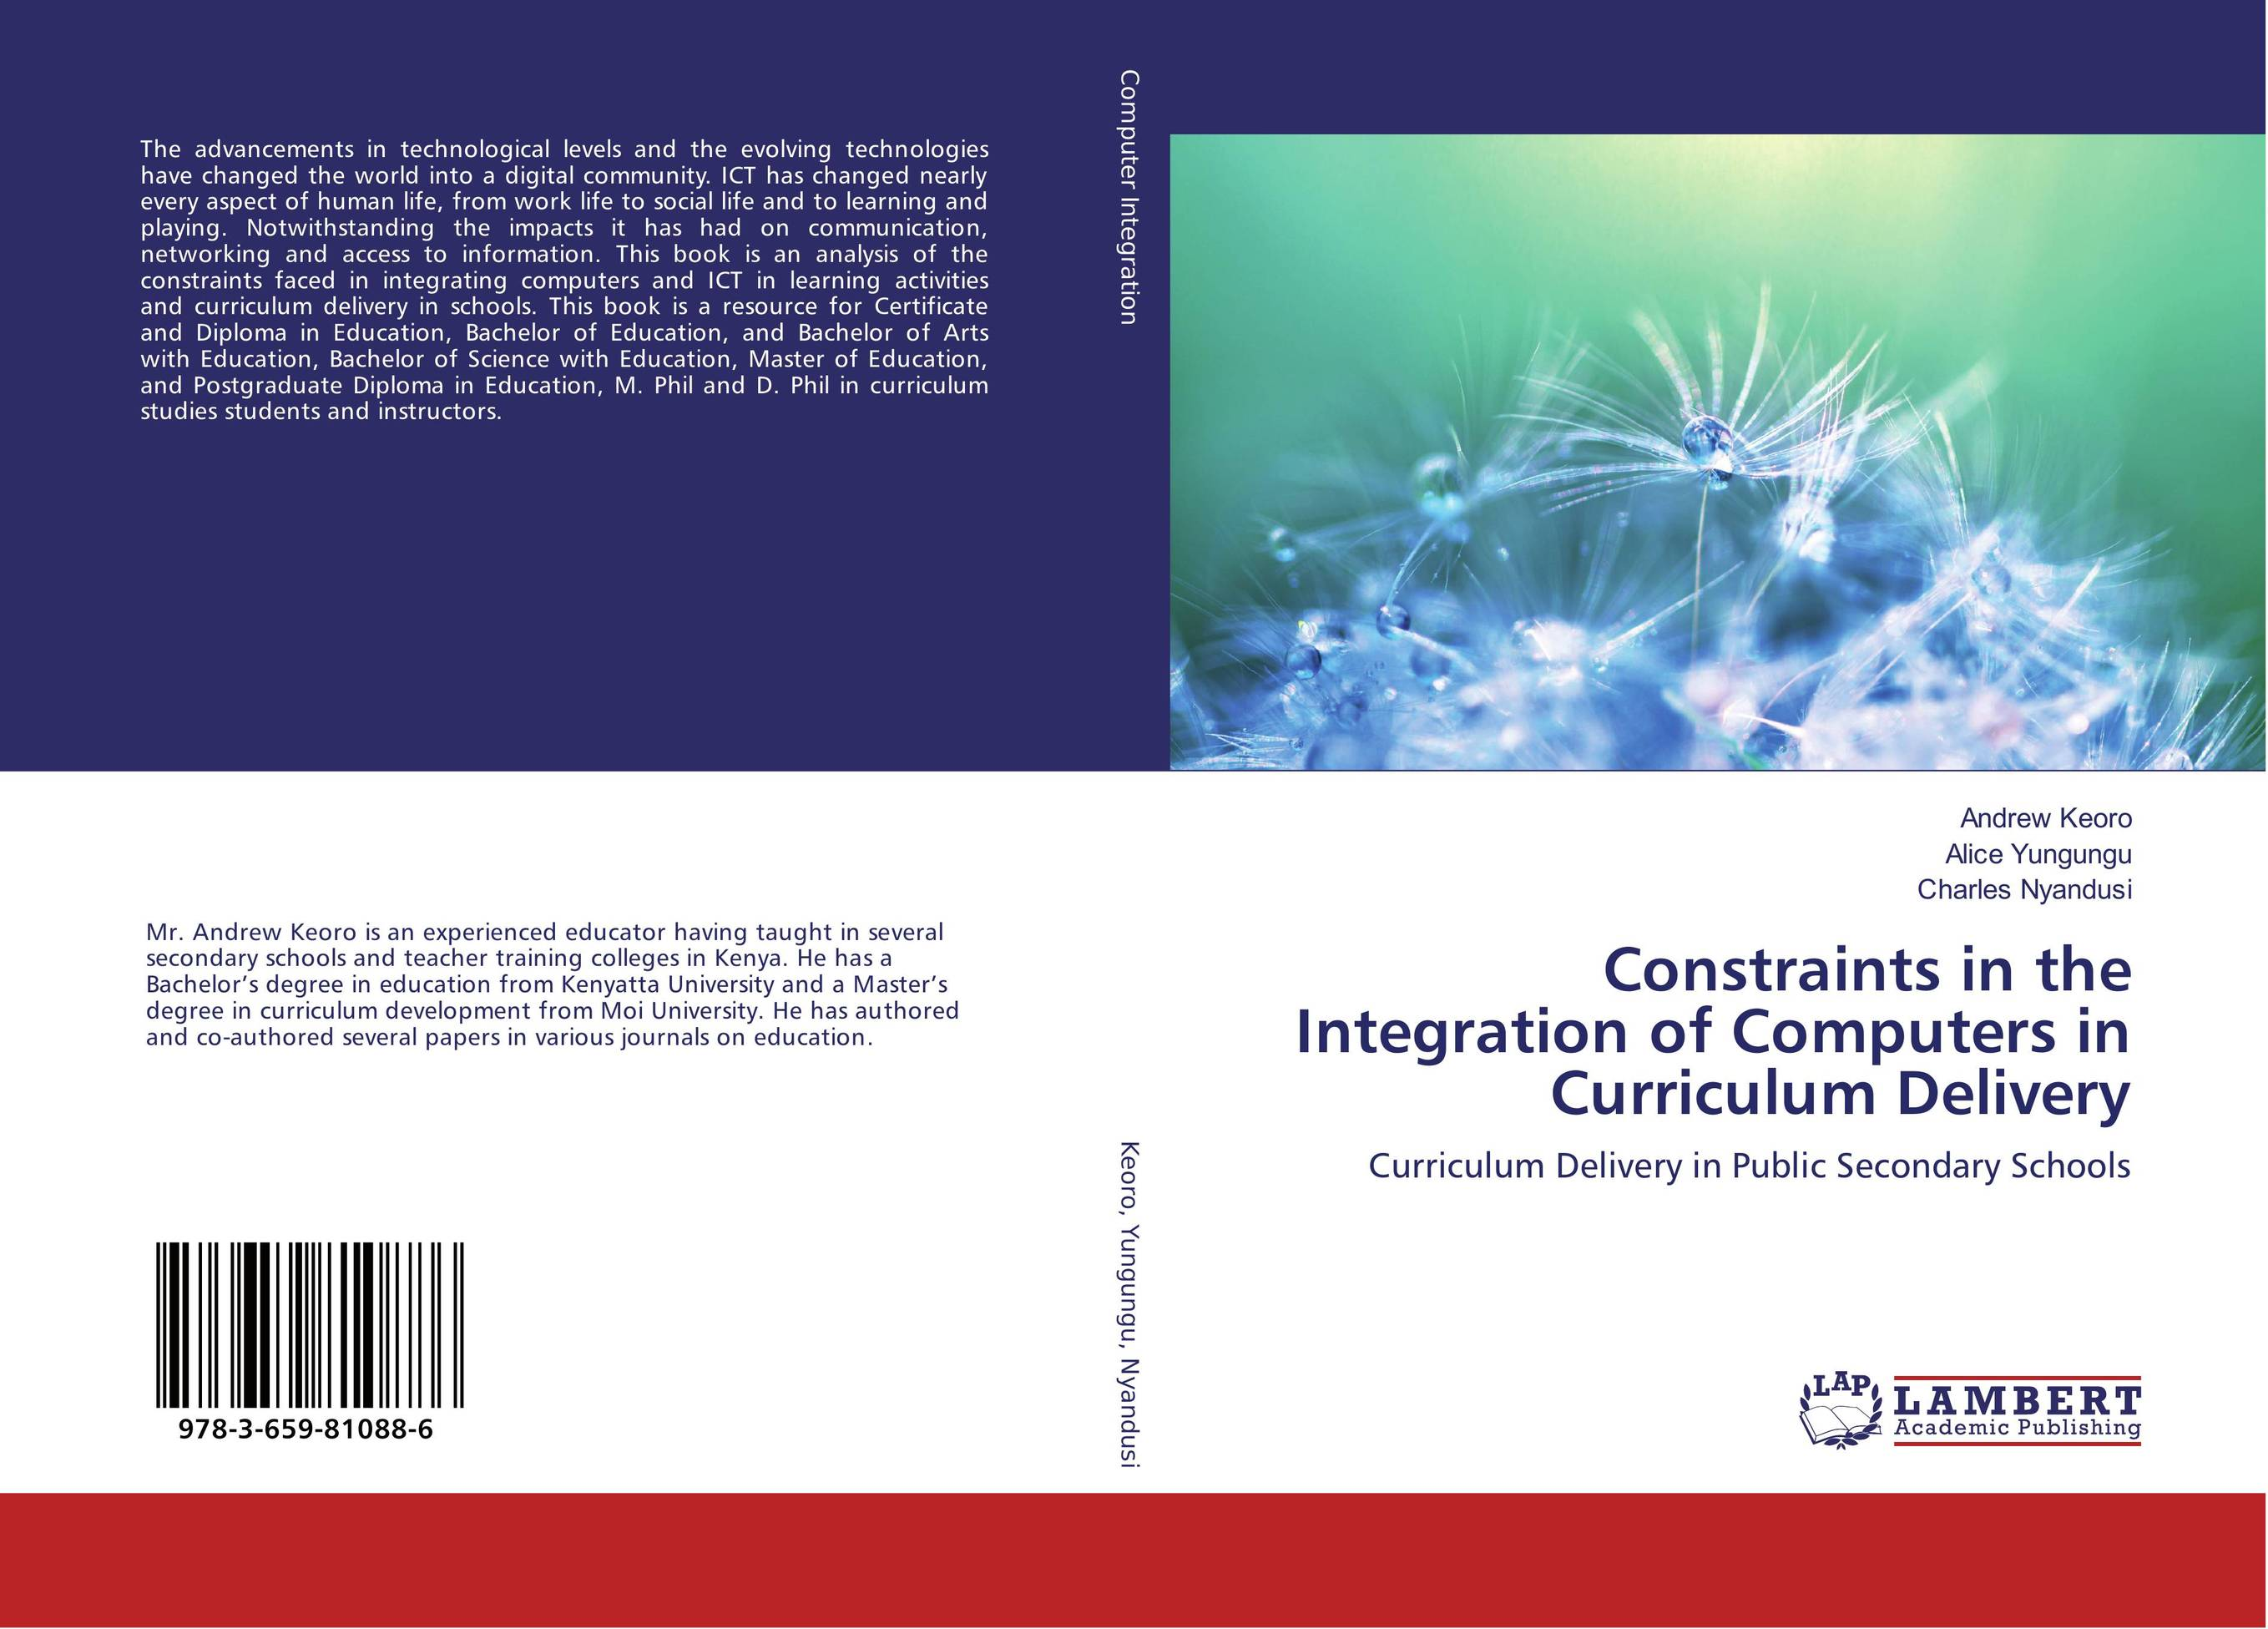 Constraints in the Integration of Computers in Curriculum Delivery elite science education arts of the new millennium